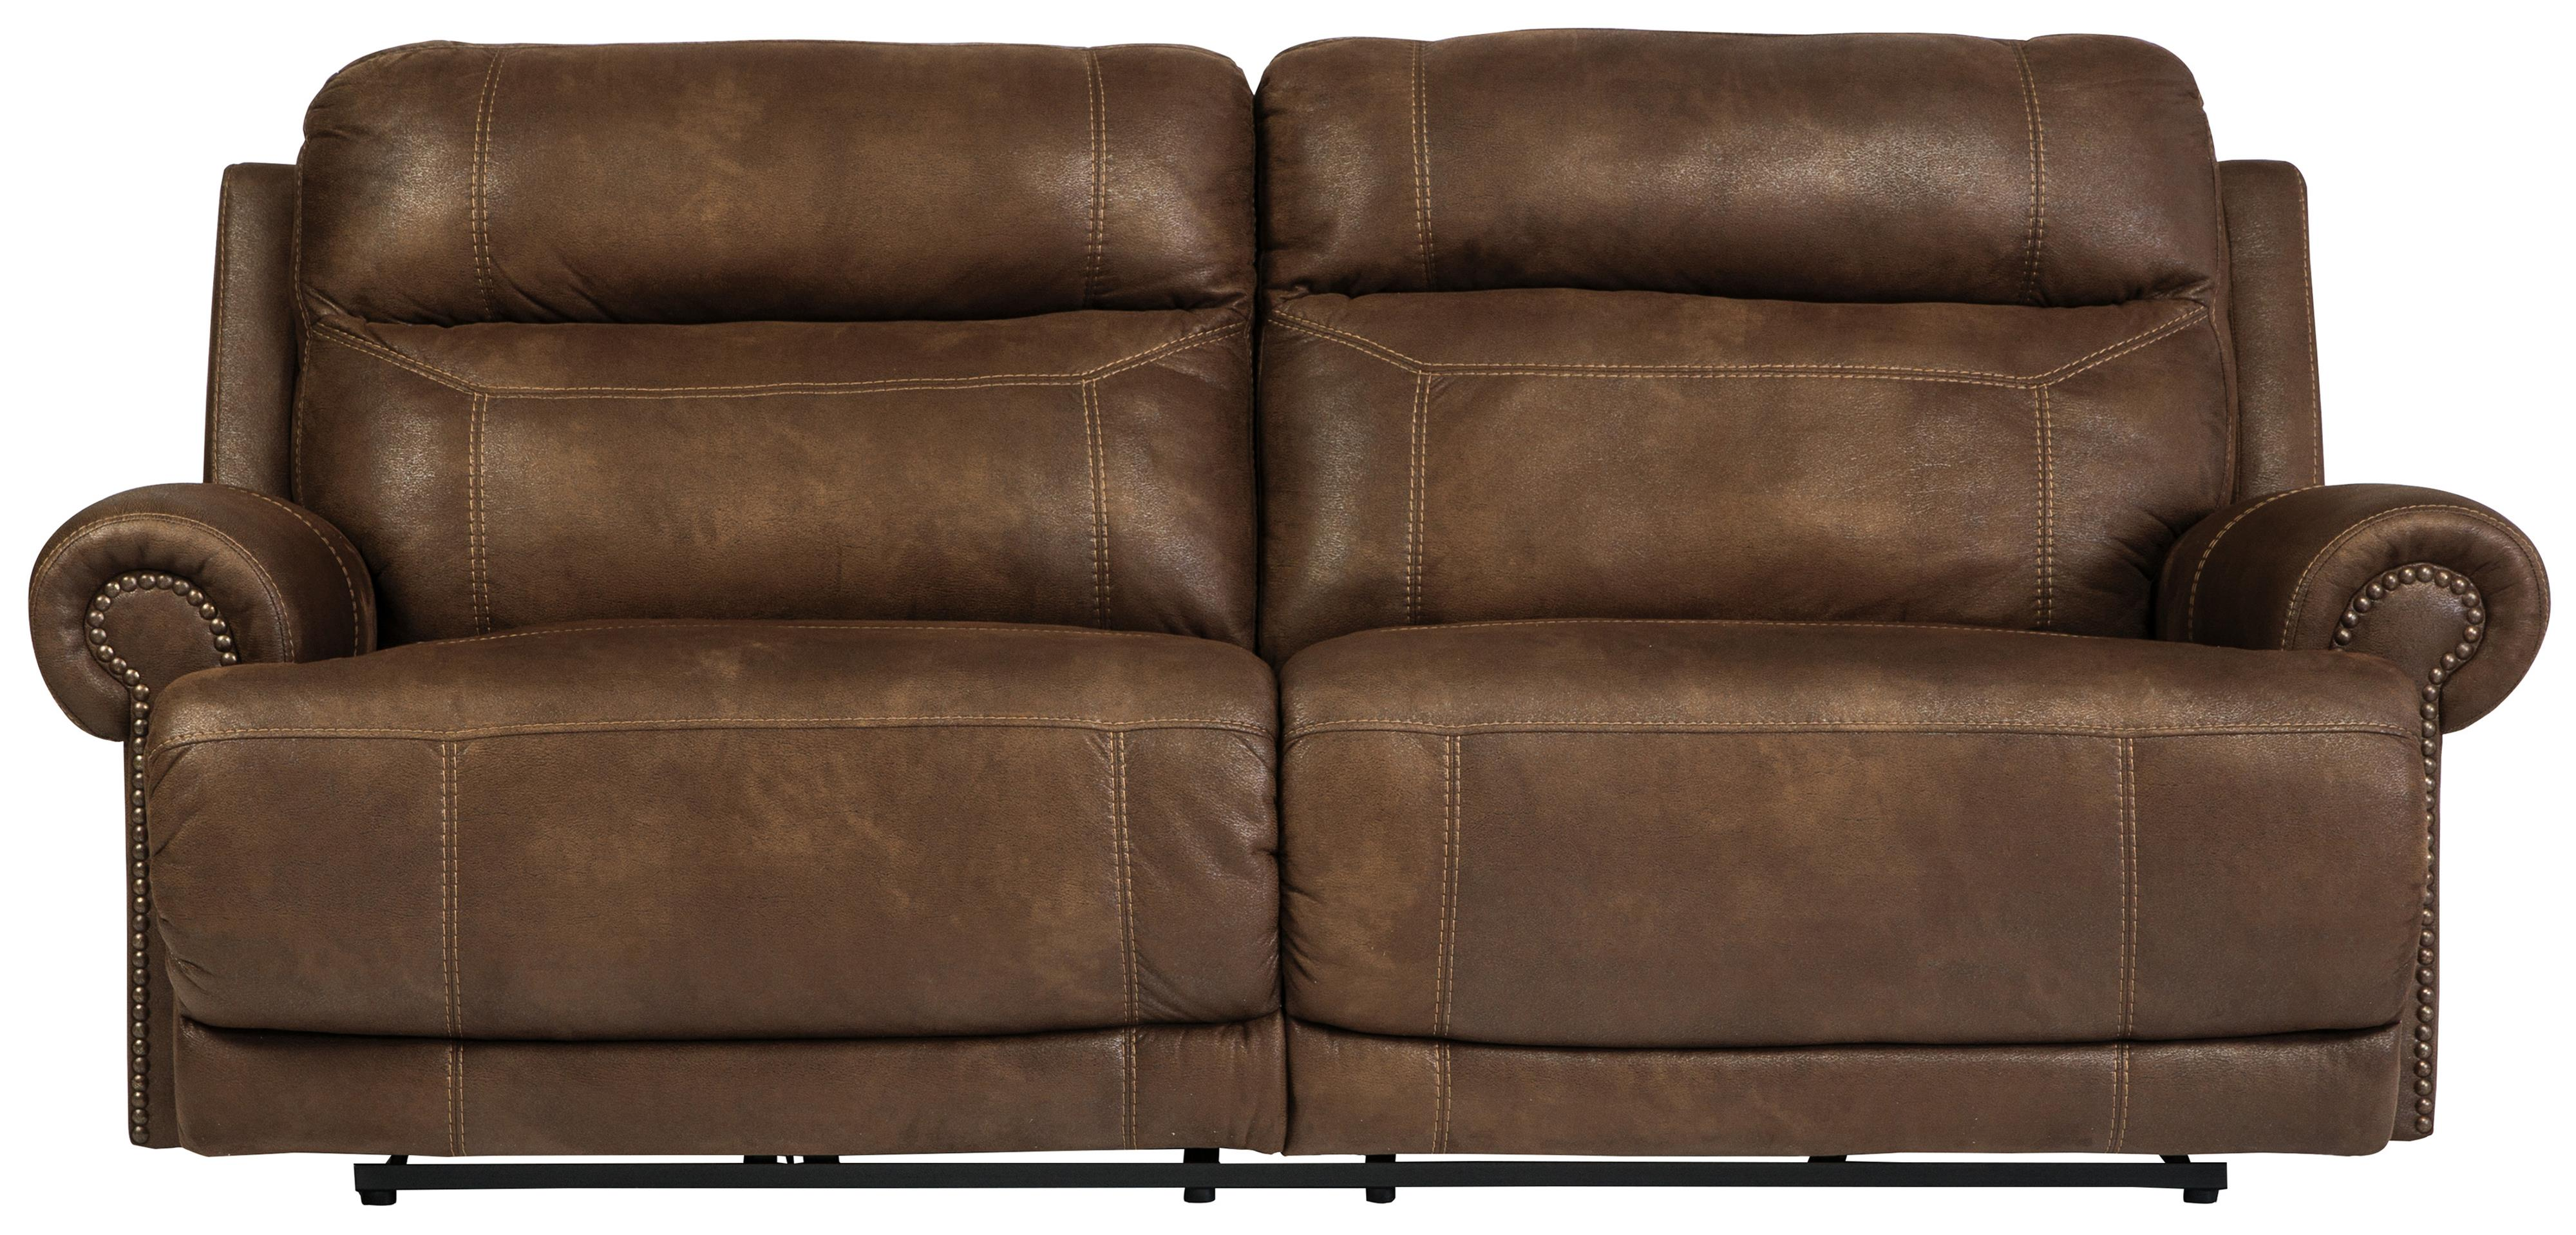 2 Seat Reclining Power Sofa With Rolled Arms With Nailhead